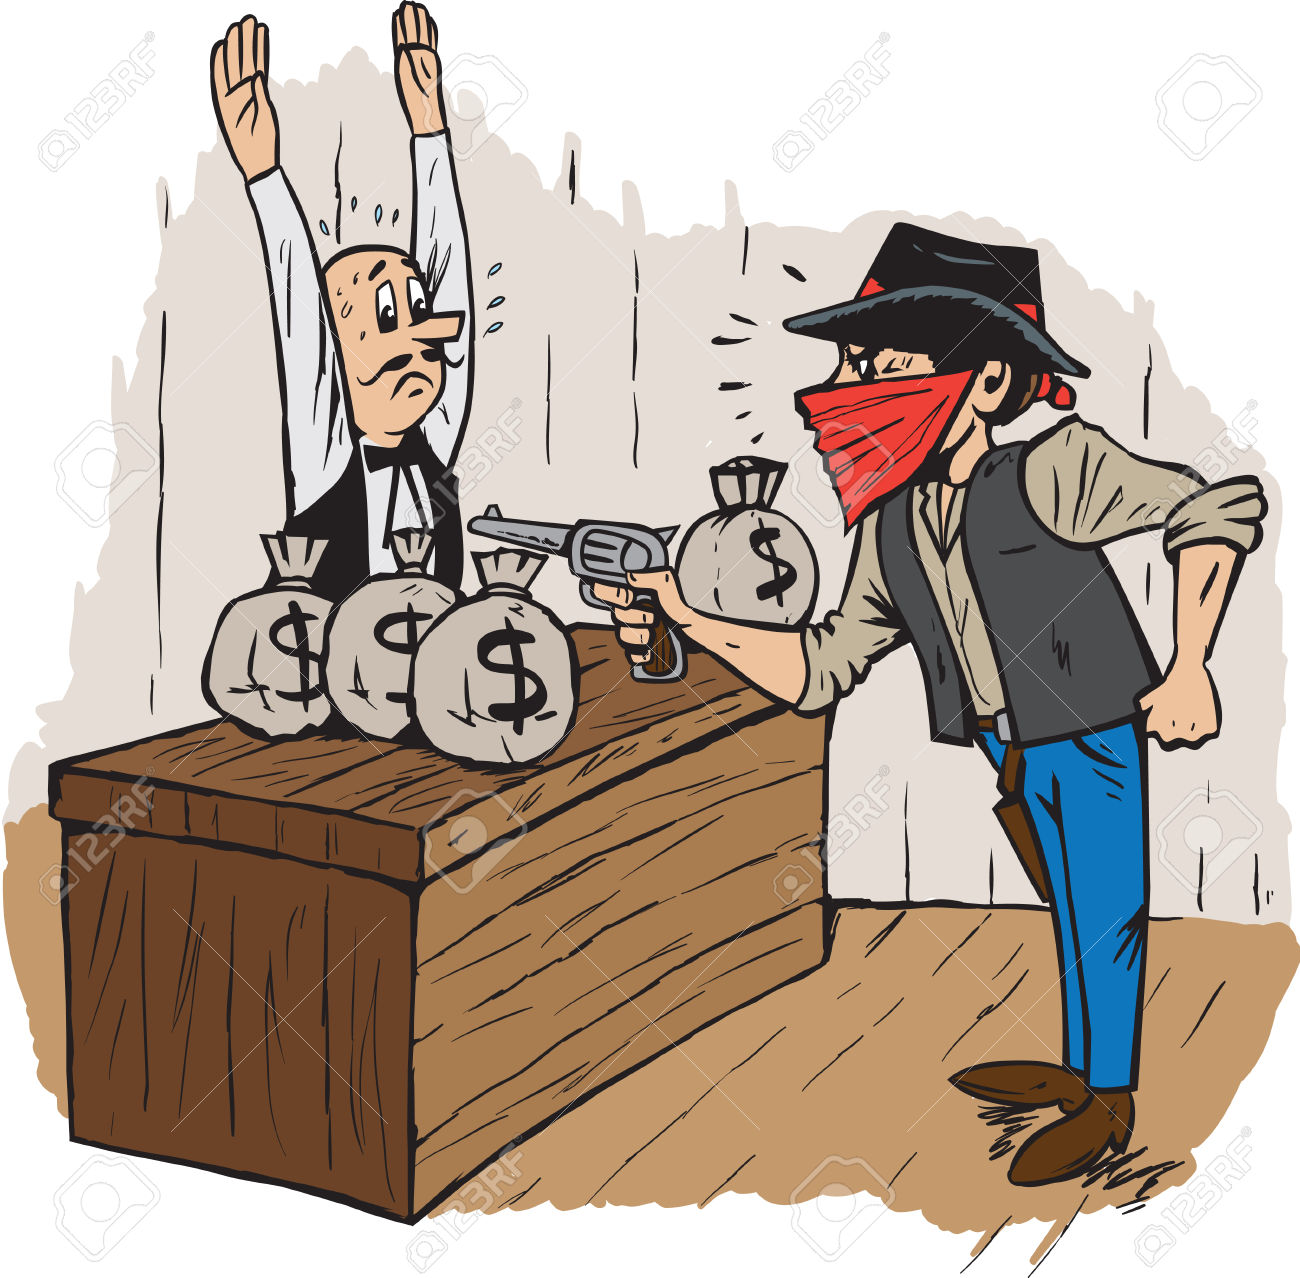 Clipart bank robber.  robbery cliparts stock